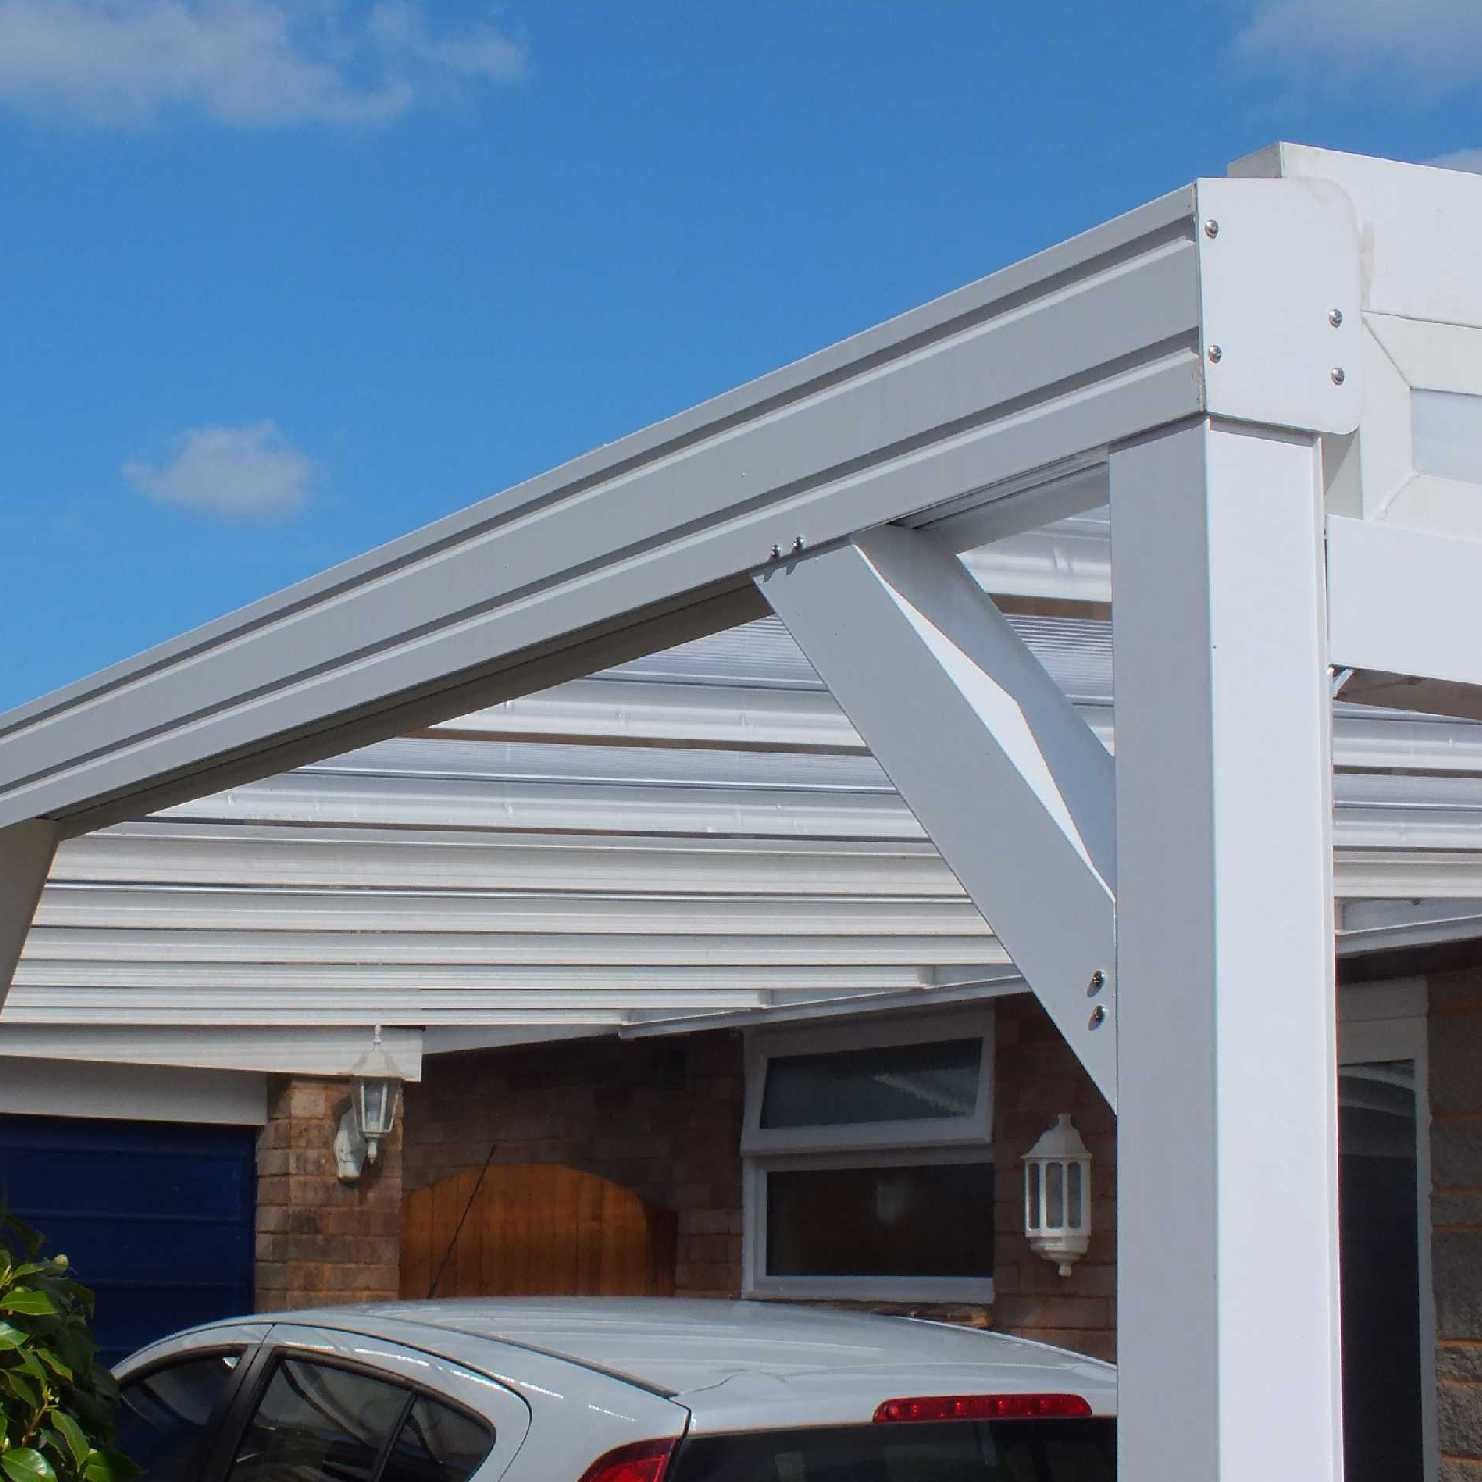 Buy Omega Smart Lean-To Canopy with 16mm Polycarbonate Glazing - 5.2m (W) x 2.5m (P), (3) Supporting Posts online today